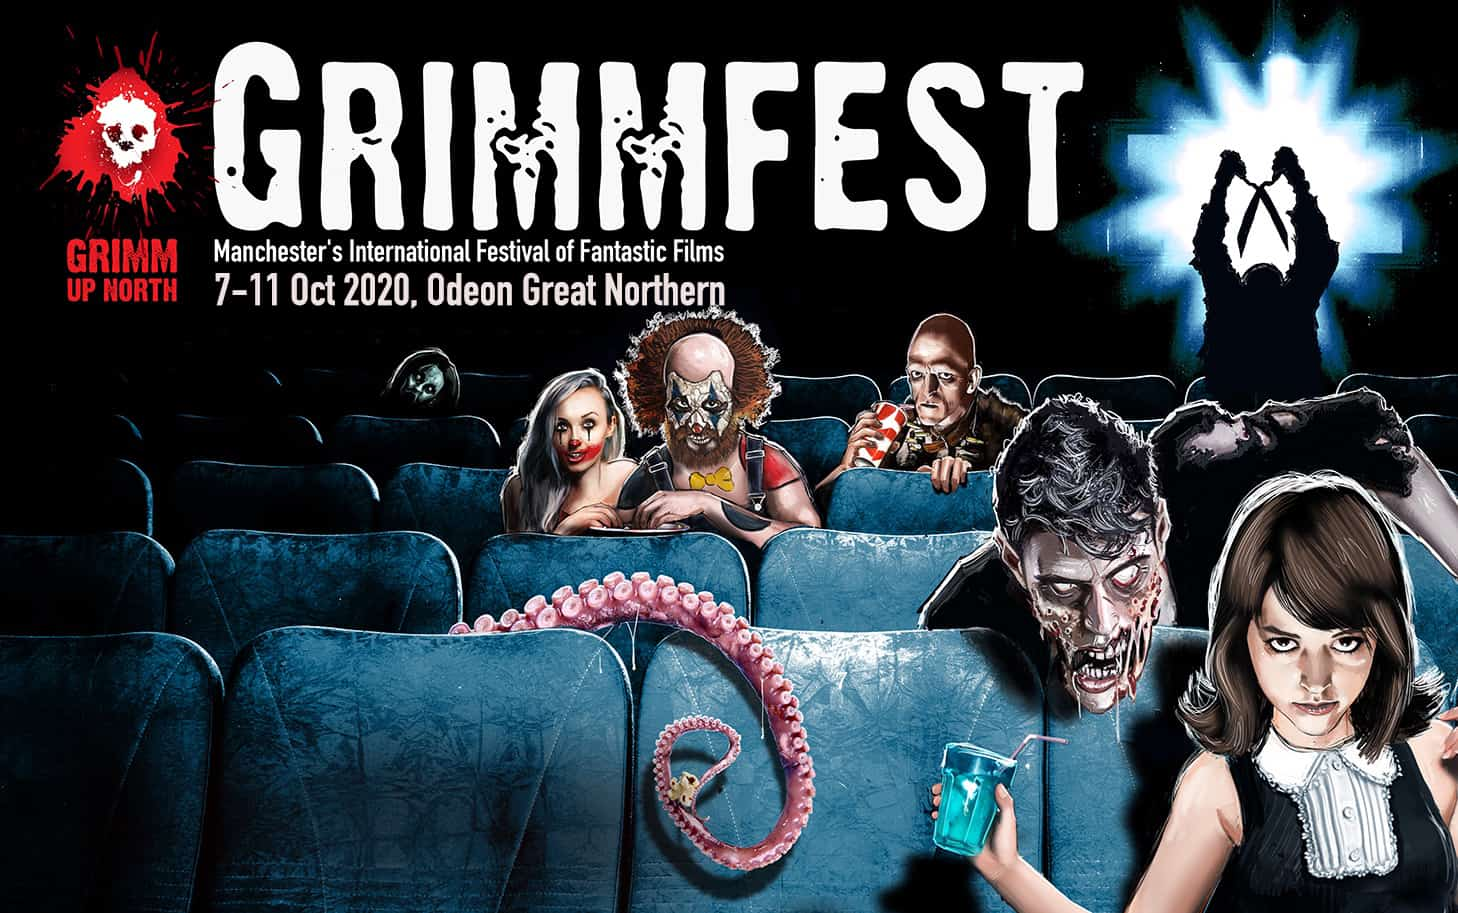 Grimmfest 2020 image 3 - Dread Central Gets 1st GRIMMFEST 2020 News: Dates, Venue, & Guests Announced!